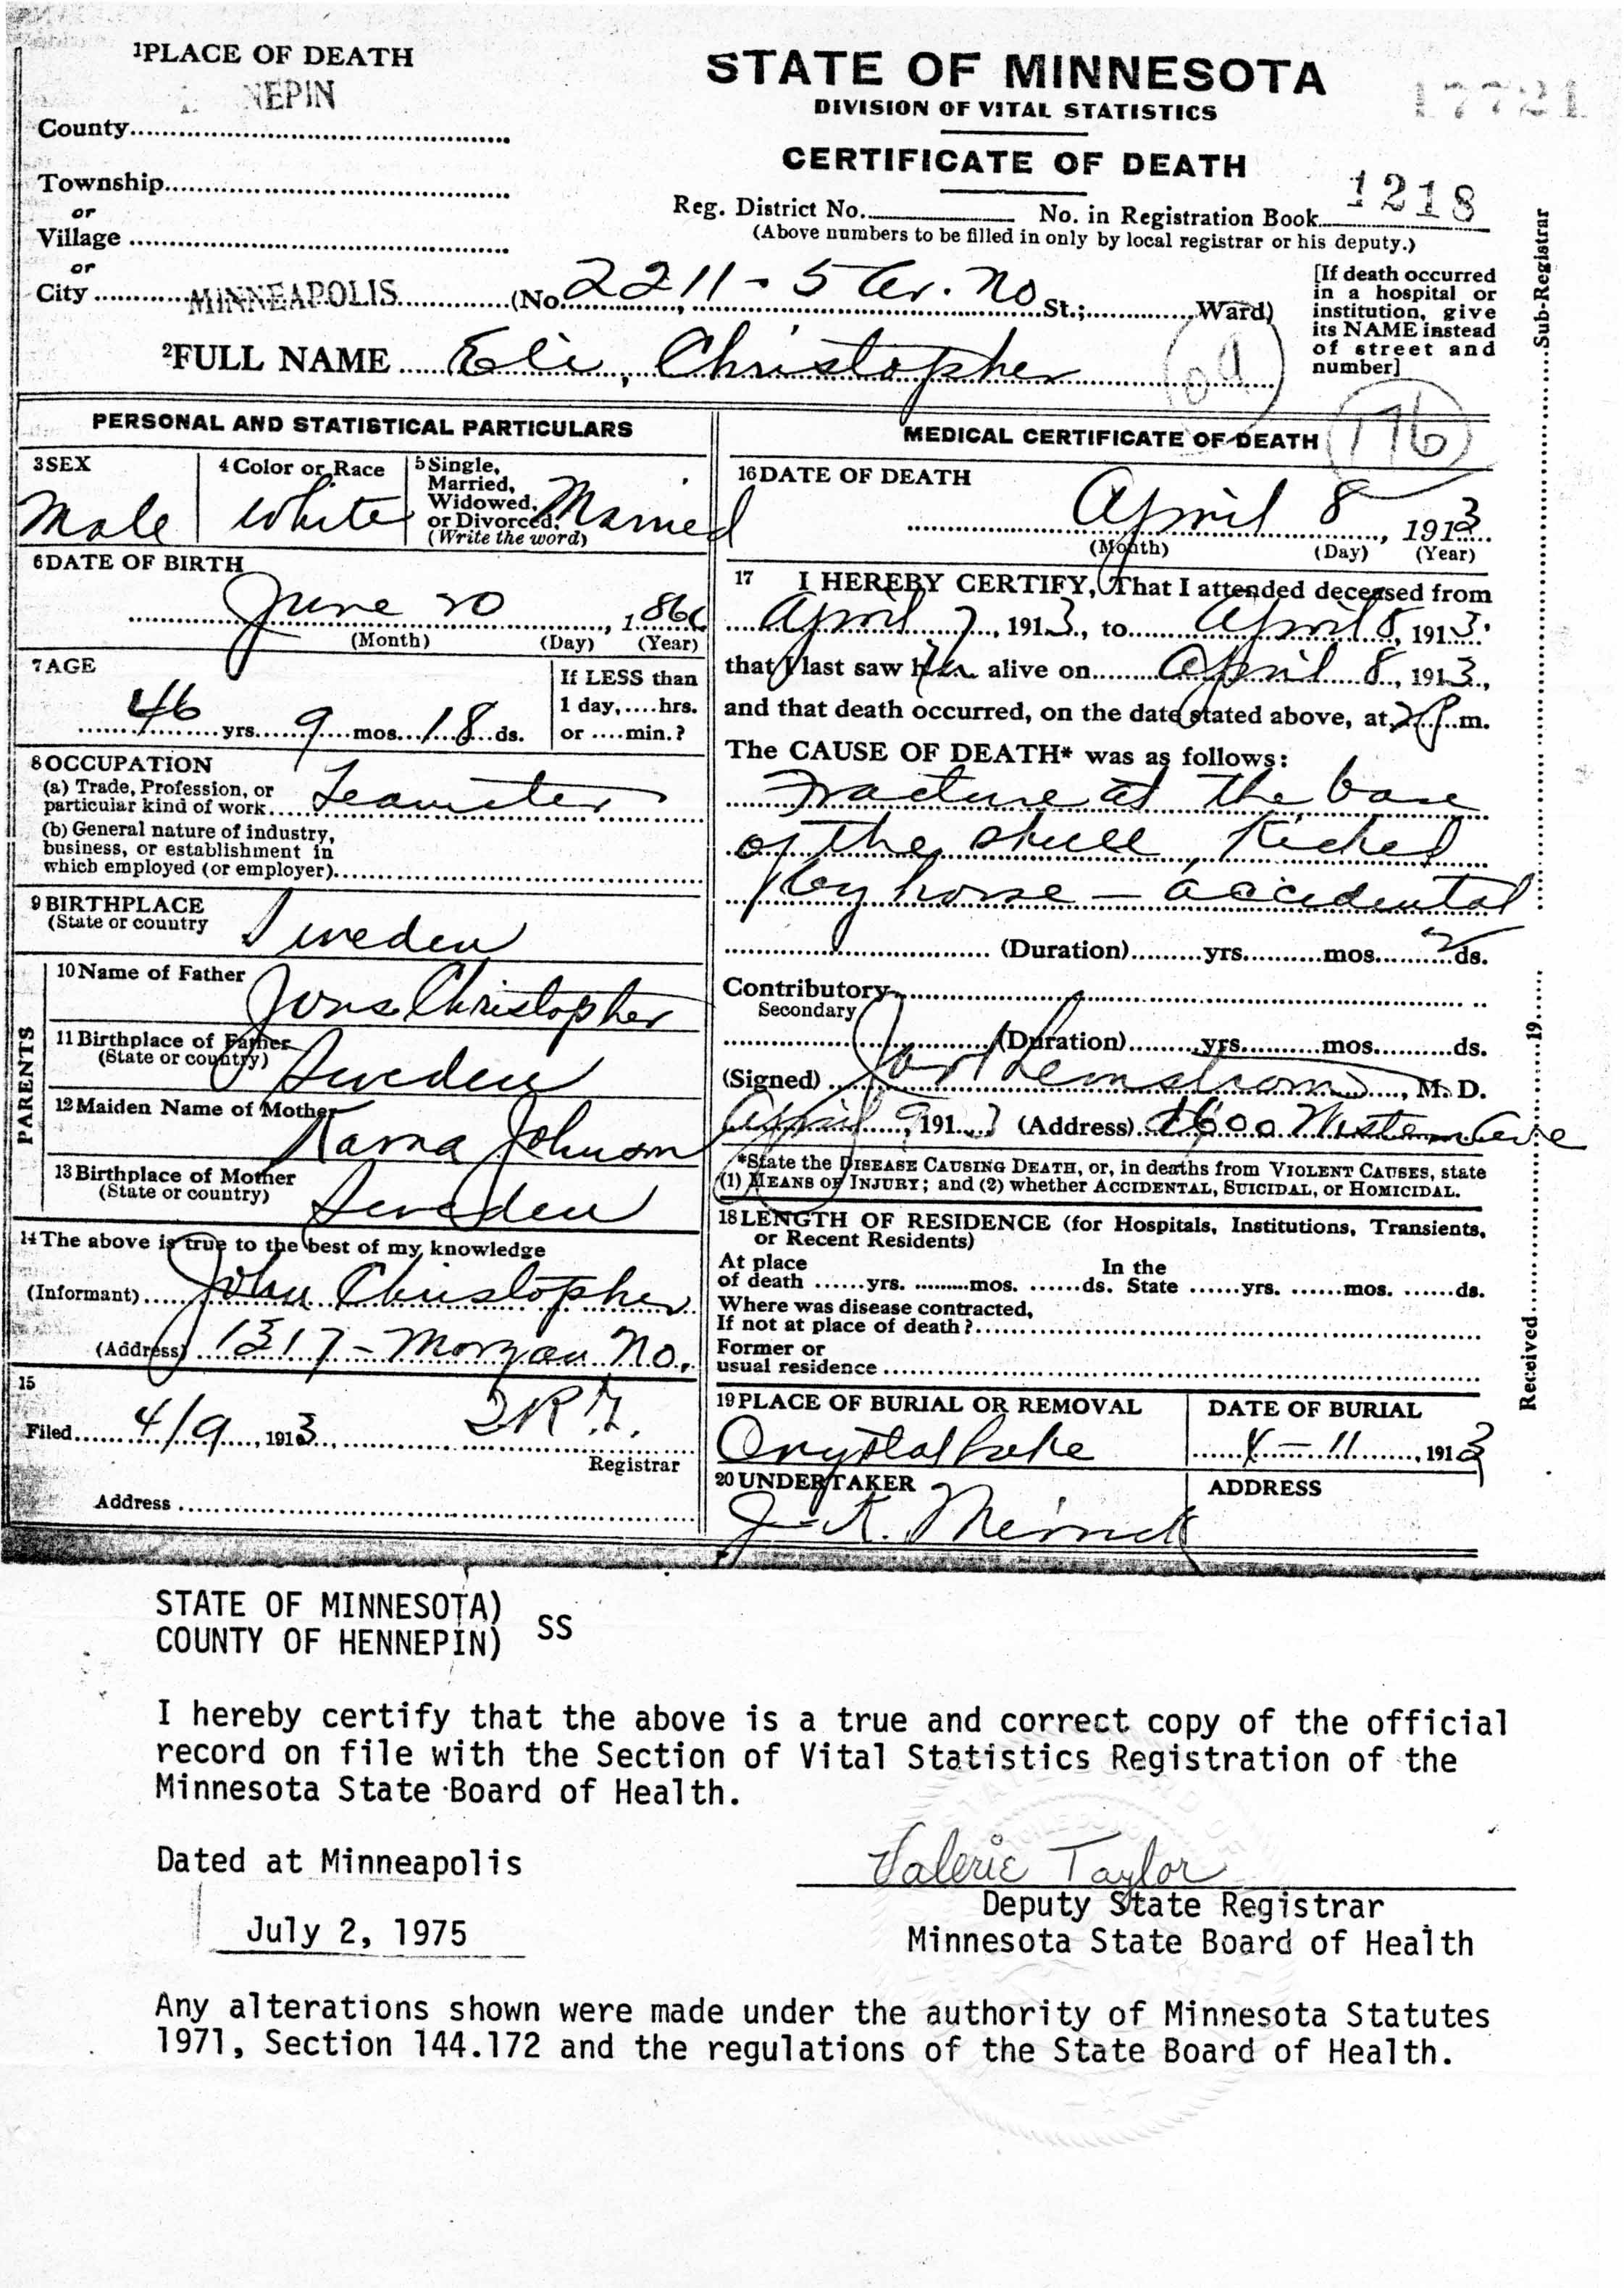 Minnesota birth certificate sample image collections certificate sources certificate of death eli christopher 08 apr 1913 minneapolis hennepin co mn certificate 17721 registration aiddatafo Choice Image